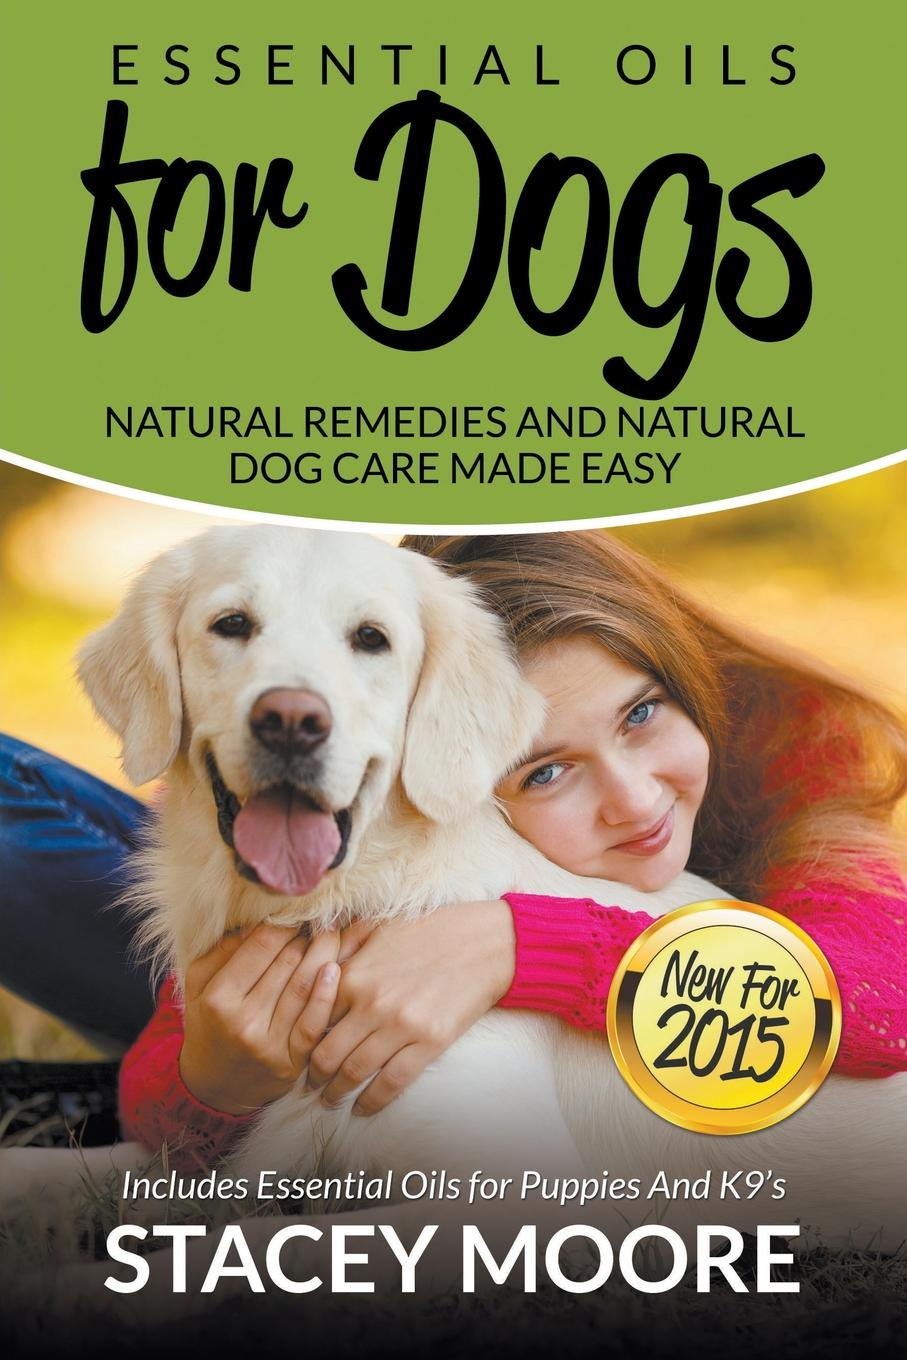 Stacey Moore Essential Oils for Dogs. Natural Remedies and Natural Dog Care Made Easy: New for 2015 Includes Essential Oils for Puppies and K9's collins essential chinese dictionary